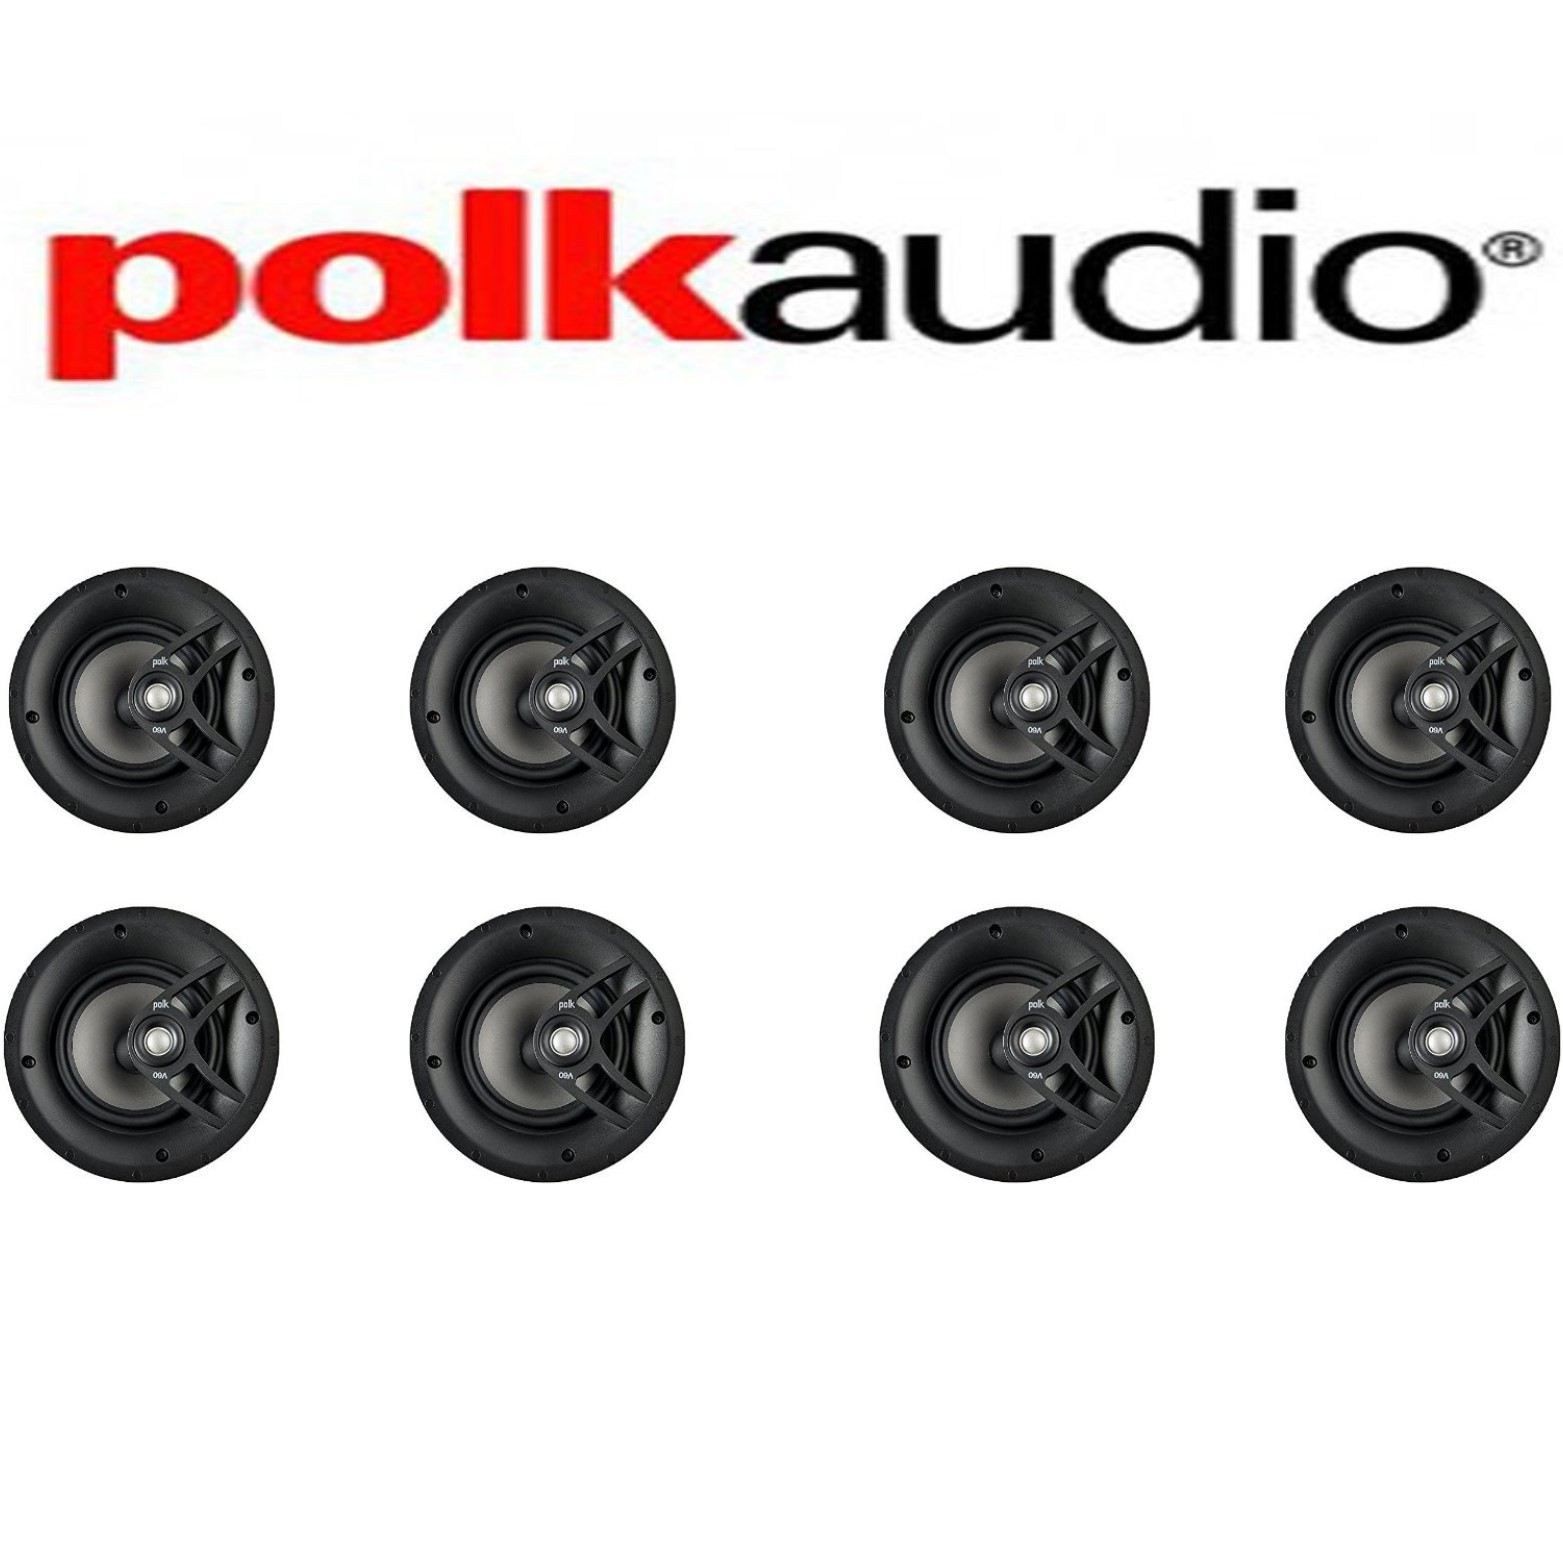 Polk Audio V60 High Performance Vanishing In-Ceiling Speakers (8 Pack) by Polk Audio